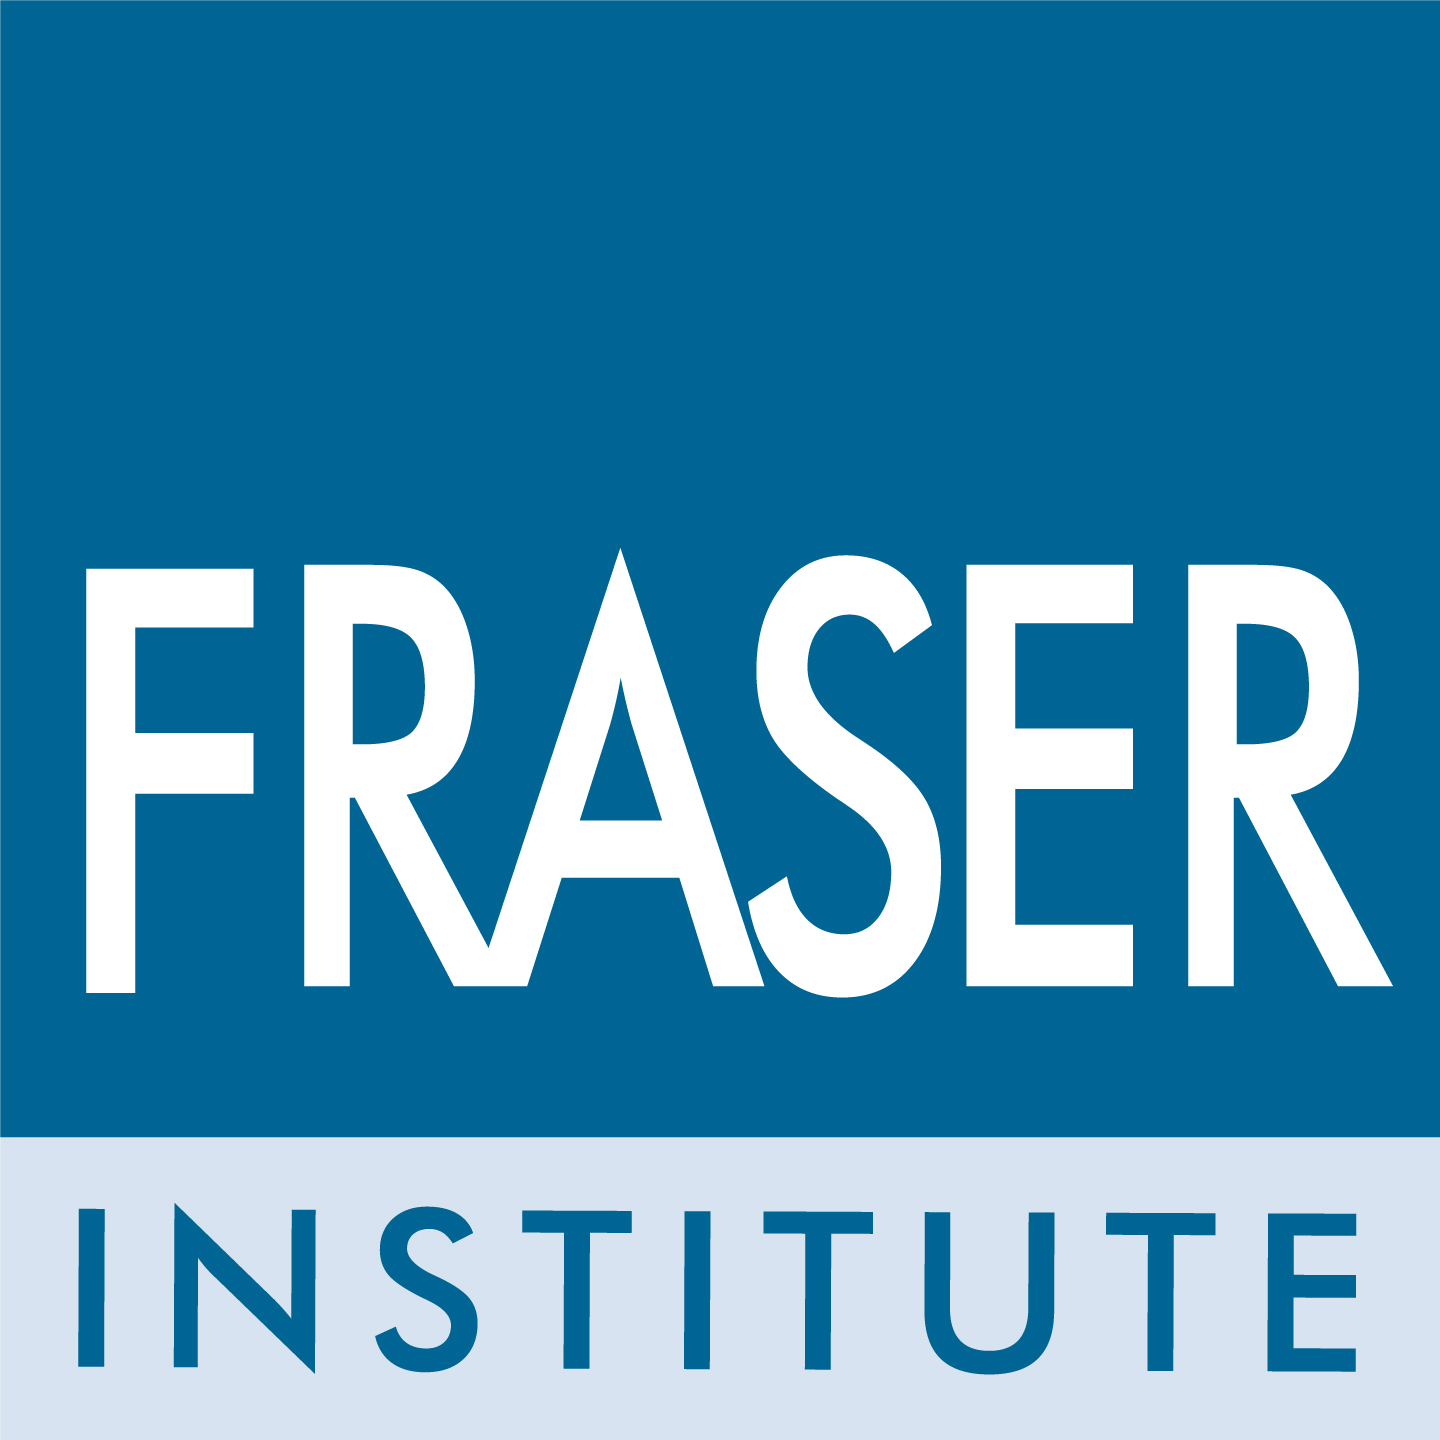 Fraser Institute News Release: New book explains genesis and key contributions of Austrian school of economics